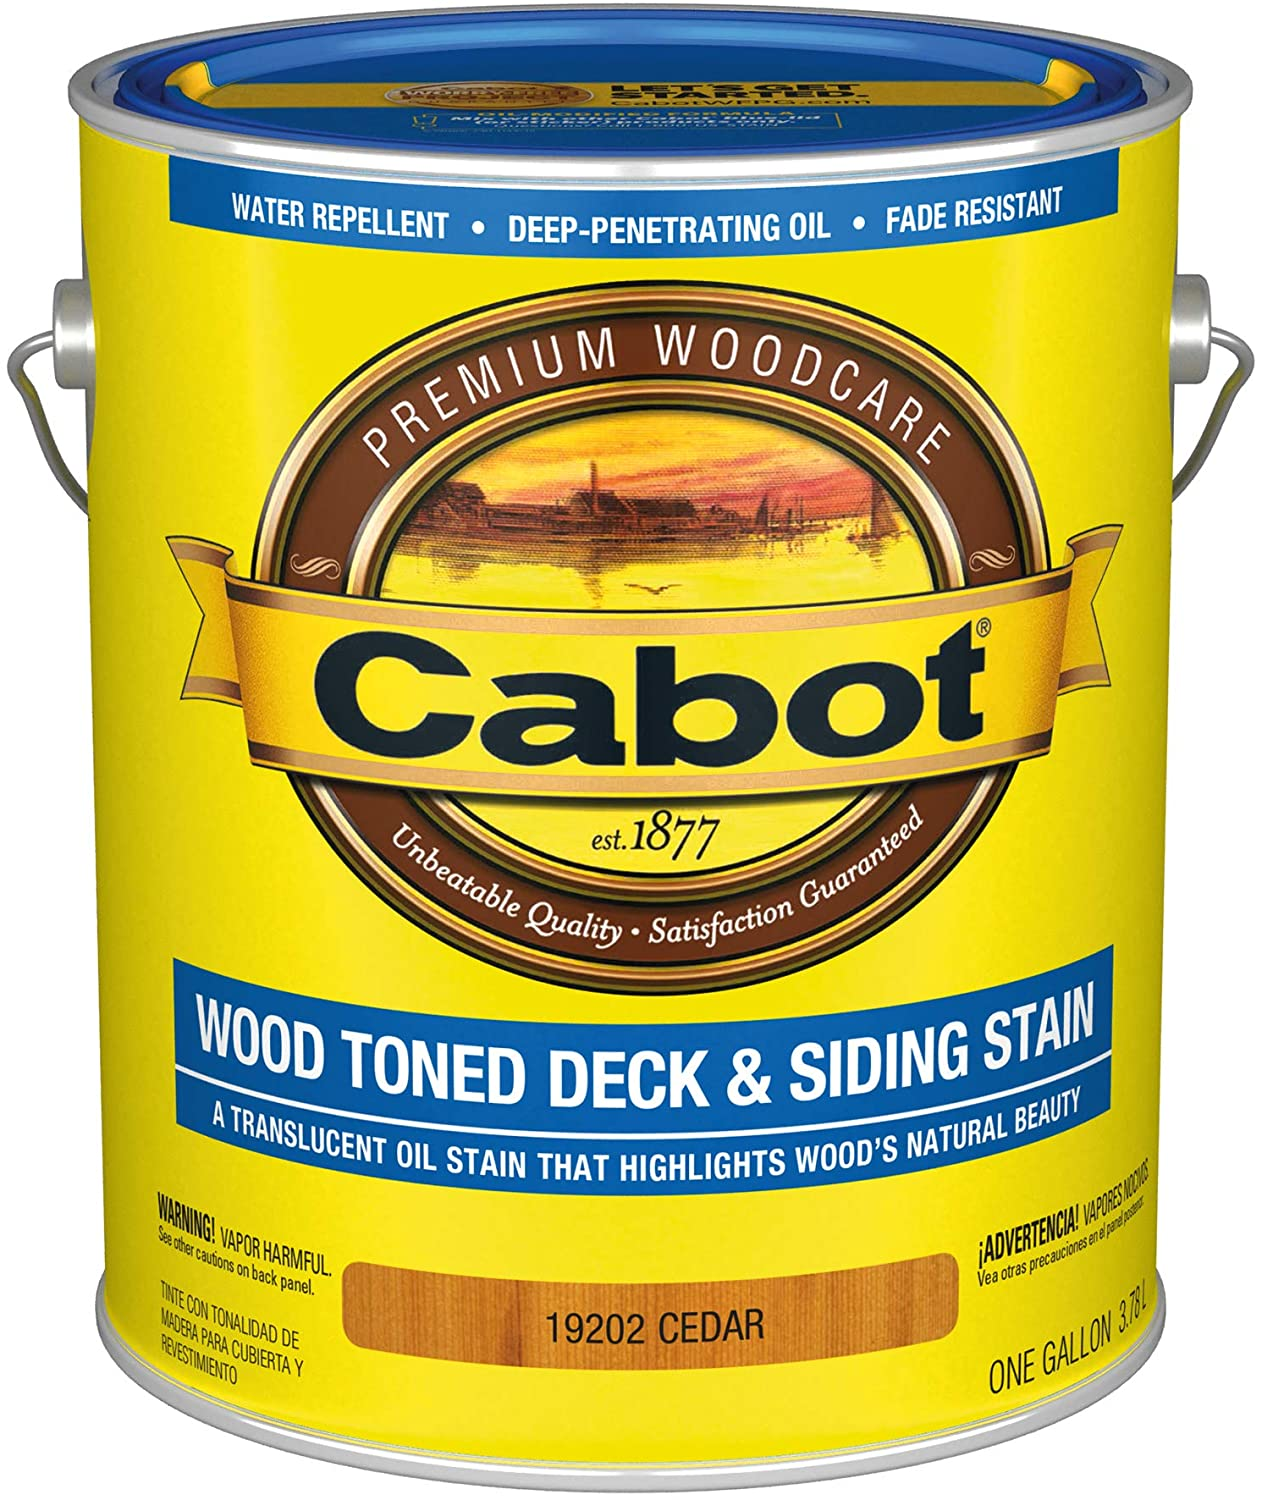 Cabot Wood-Toned Deck and Siding Stain review